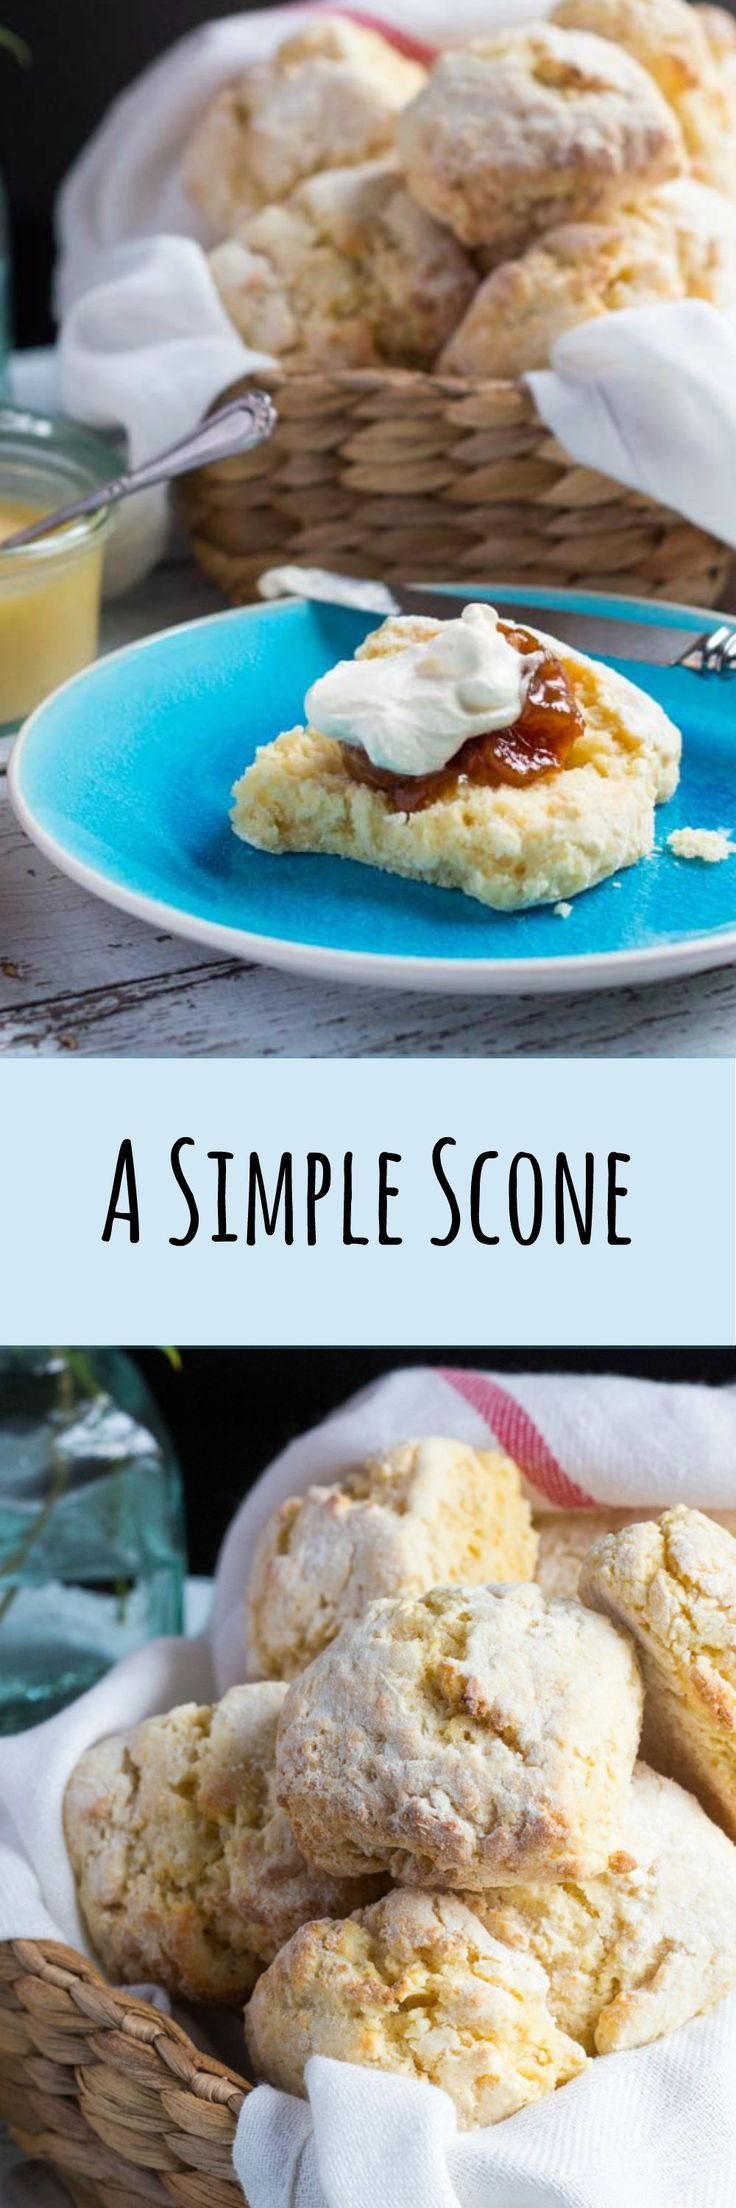 A Simple Scone | Recipe | Scones, Cooking recipes, Flour ...